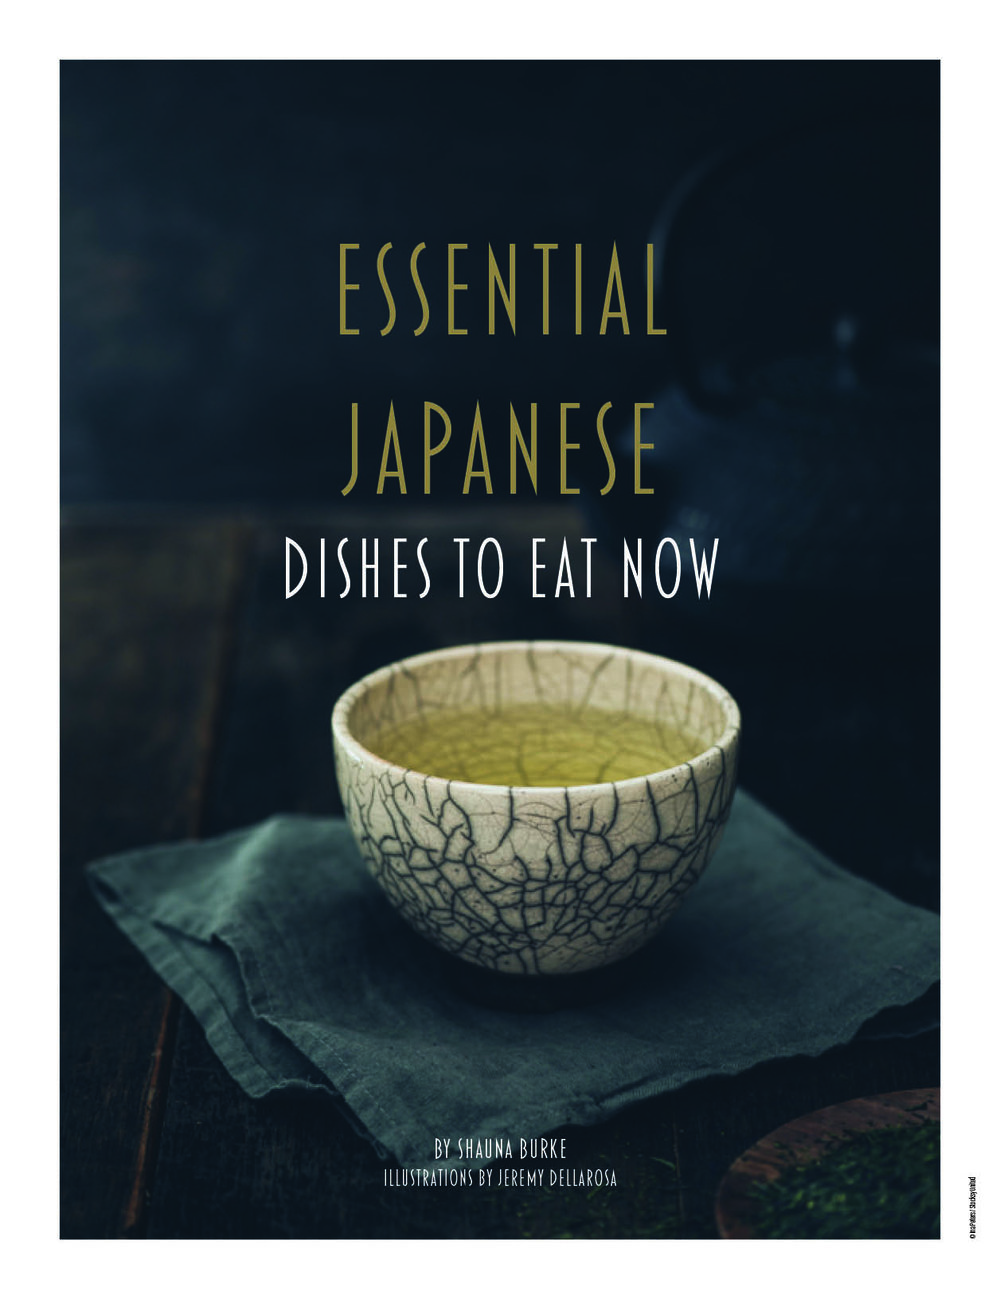 Essential Japanese Dishes /  Edible LA